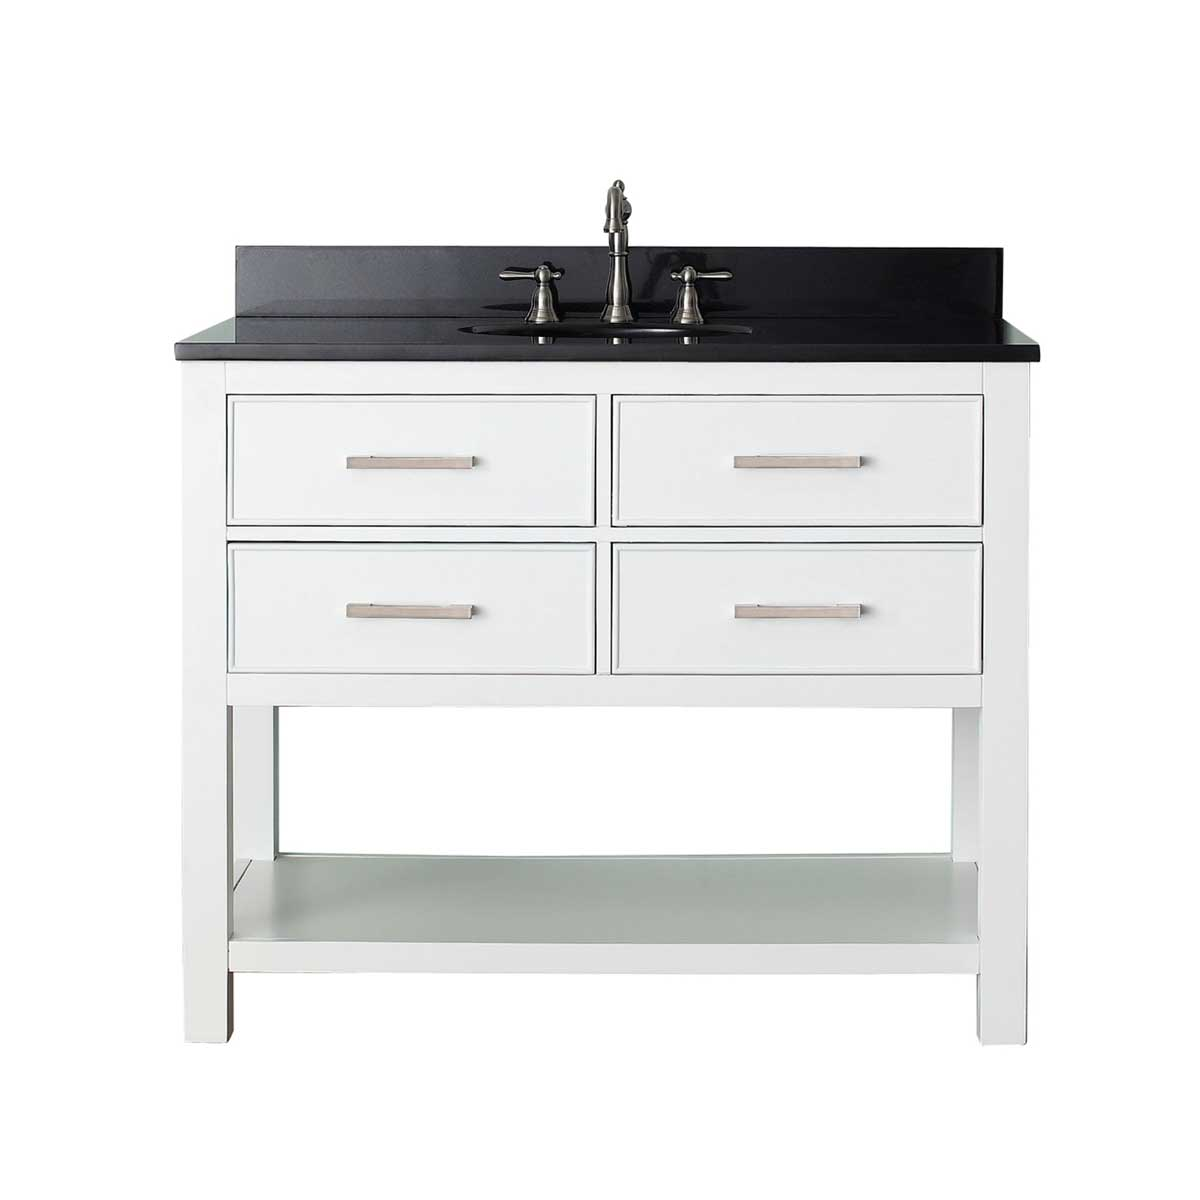 "31"" Begonia Single Bath Vanity - White - Chilled Gray with Black Granite Top"